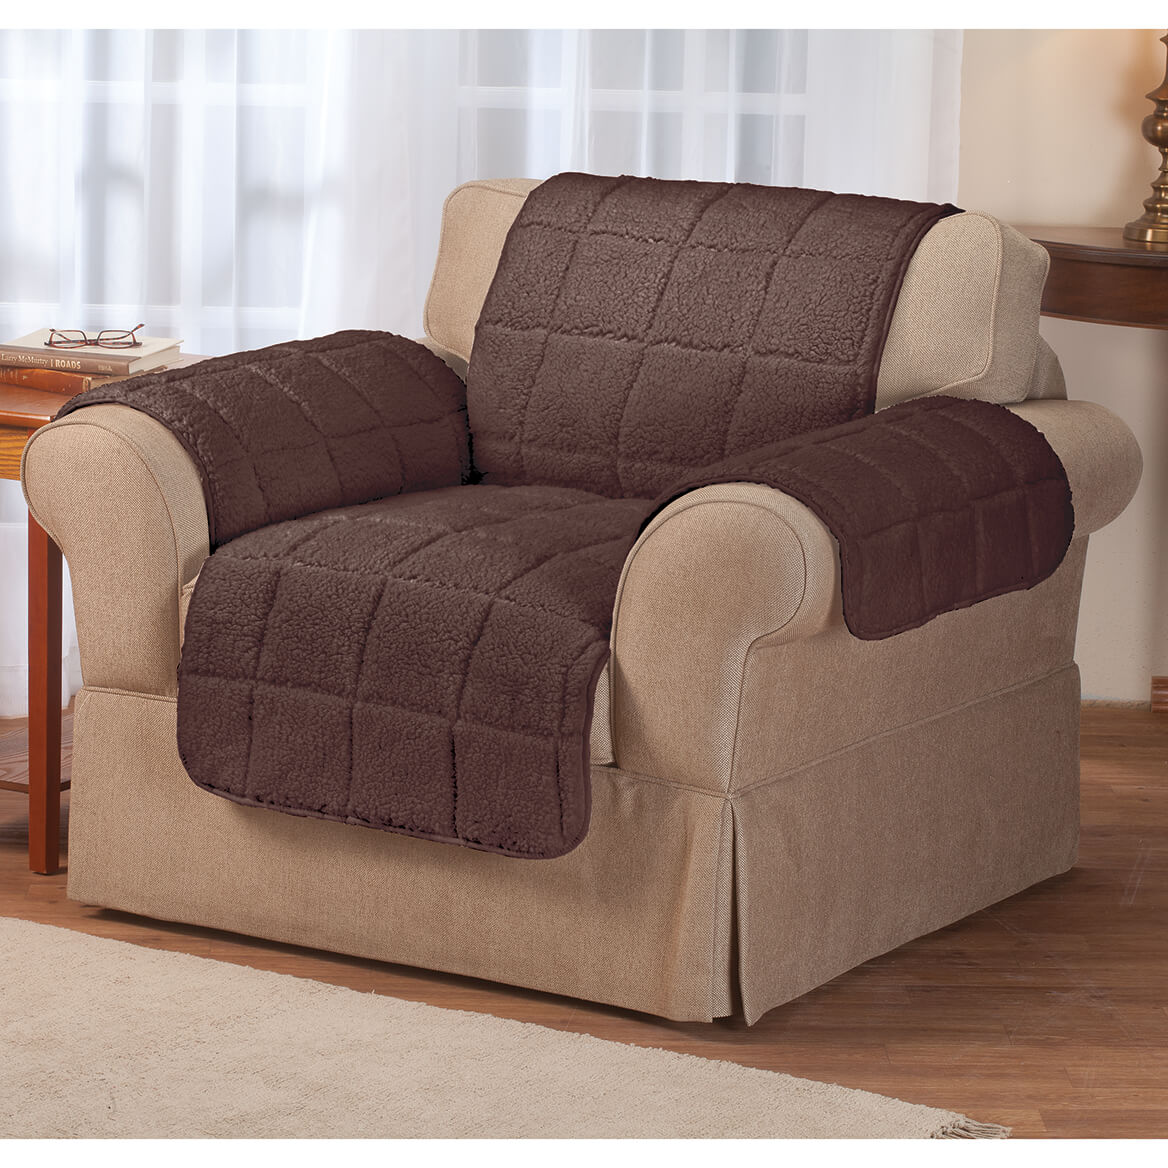 Automatic Electric Blanket - Electric Blanket - Miles Kimball